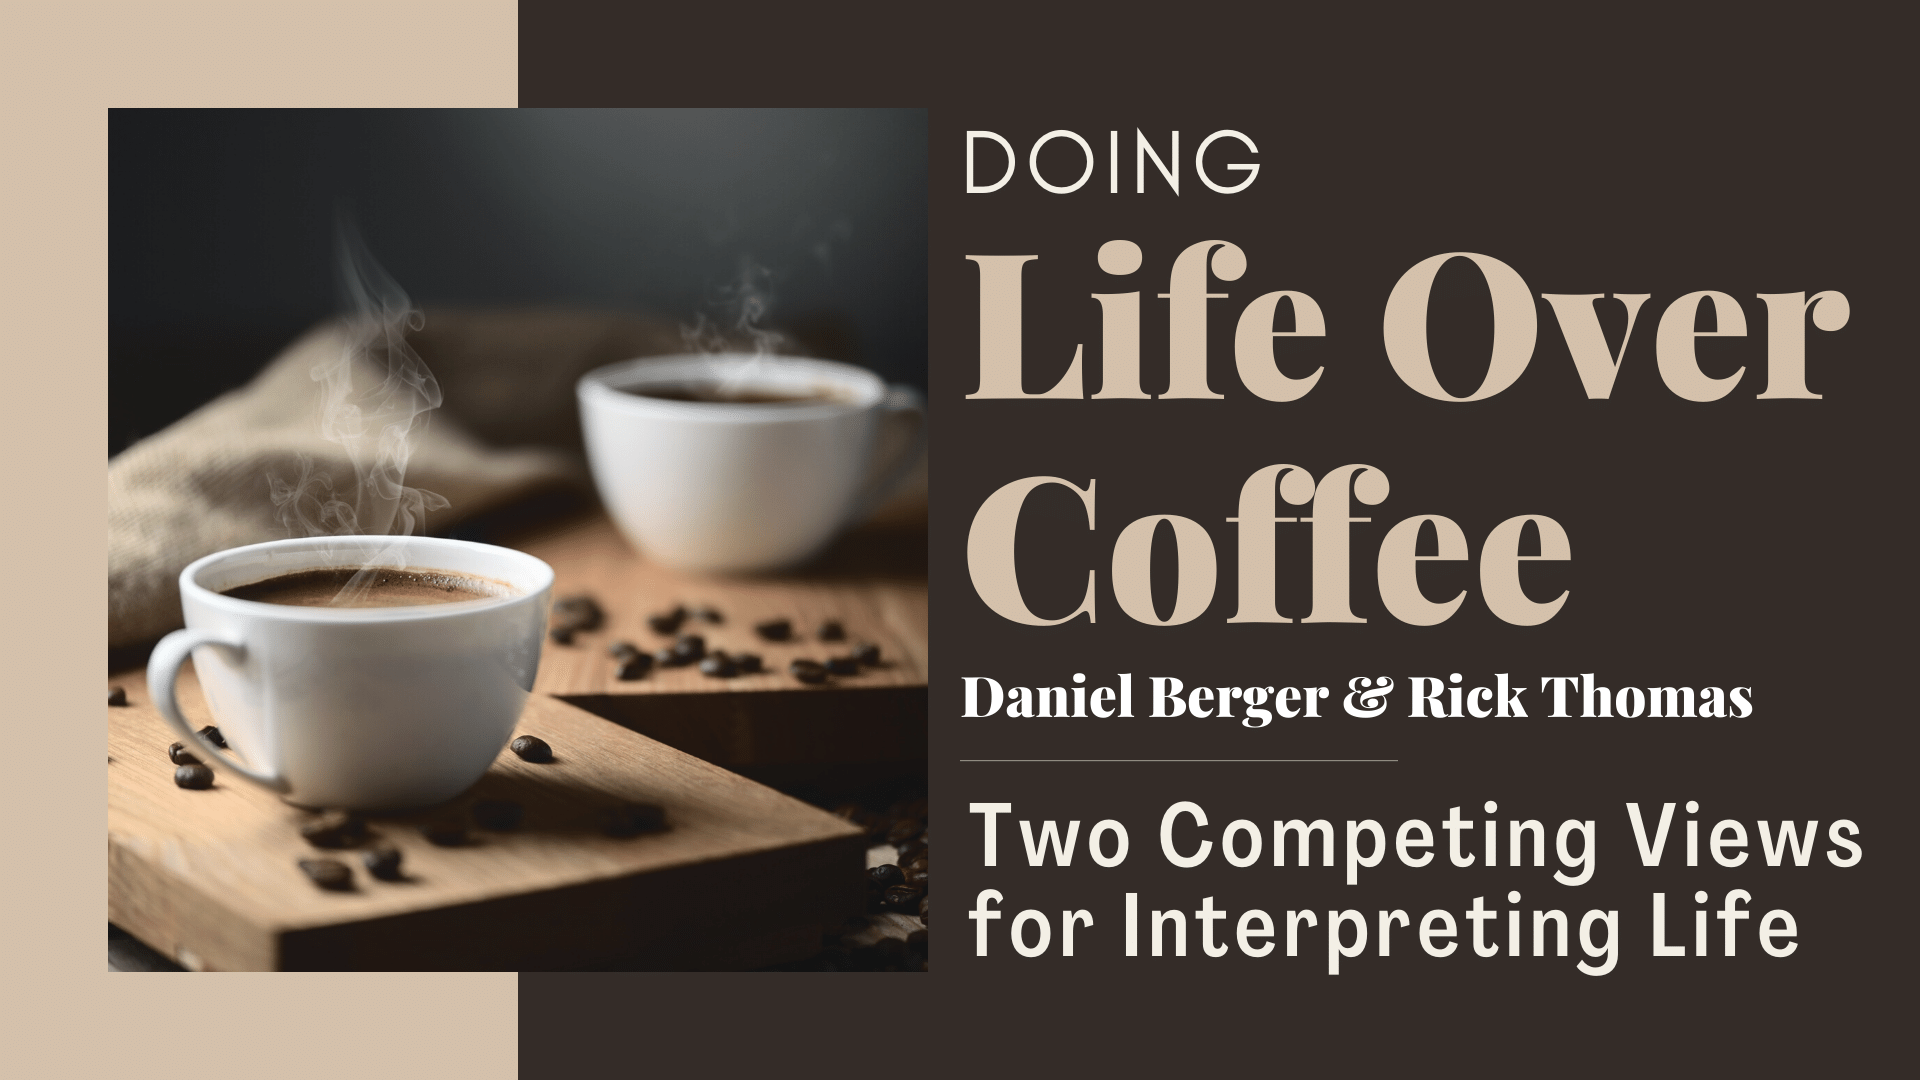 Two Competing Views for Interpreting Life